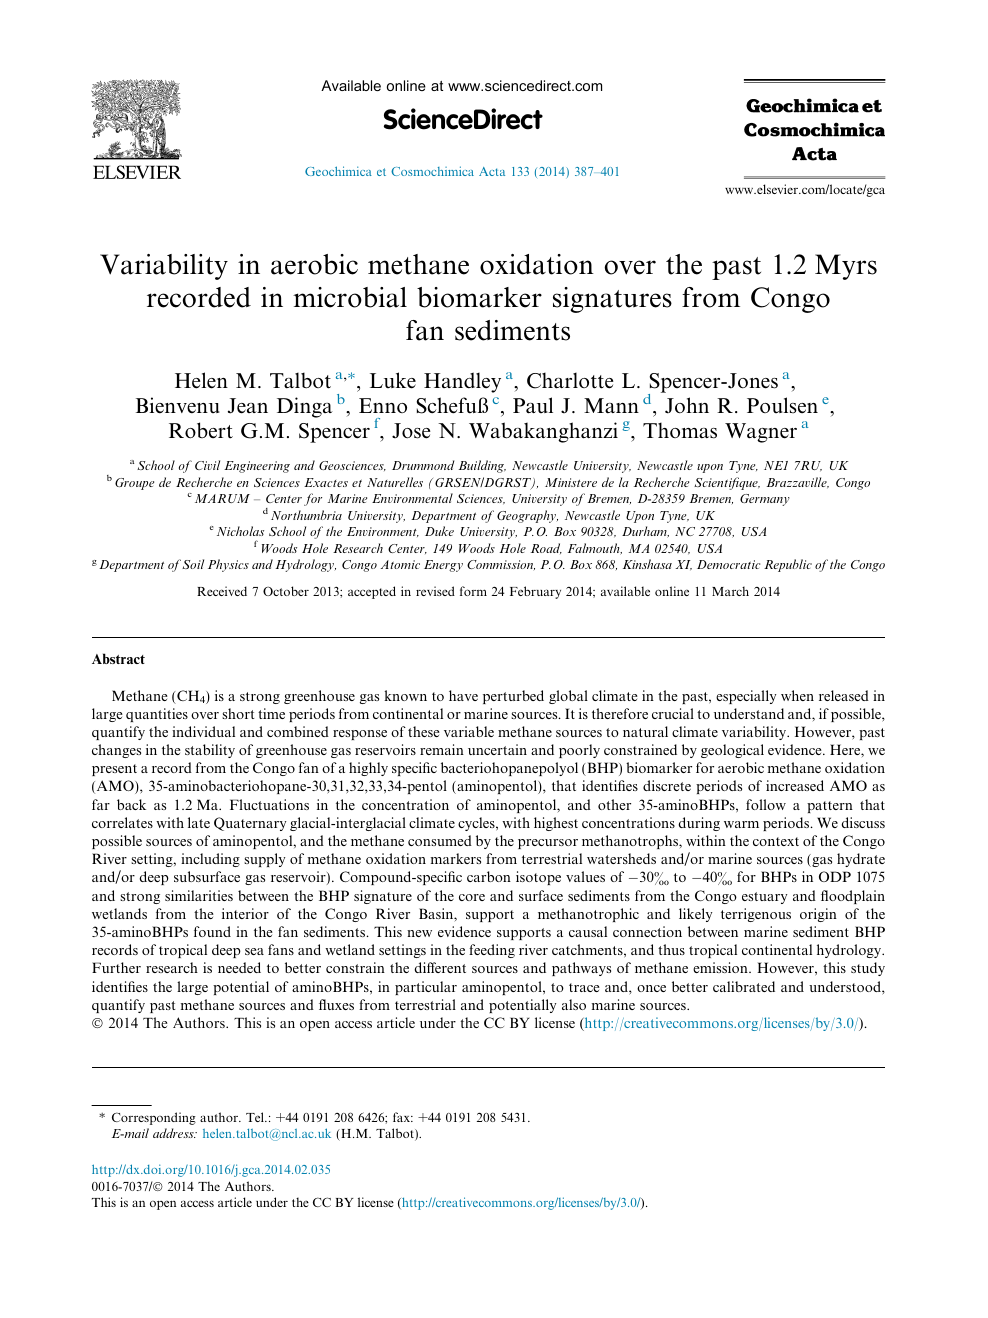 foto de Variability in aerobic methane oxidation over the past 1.2Myrs ...